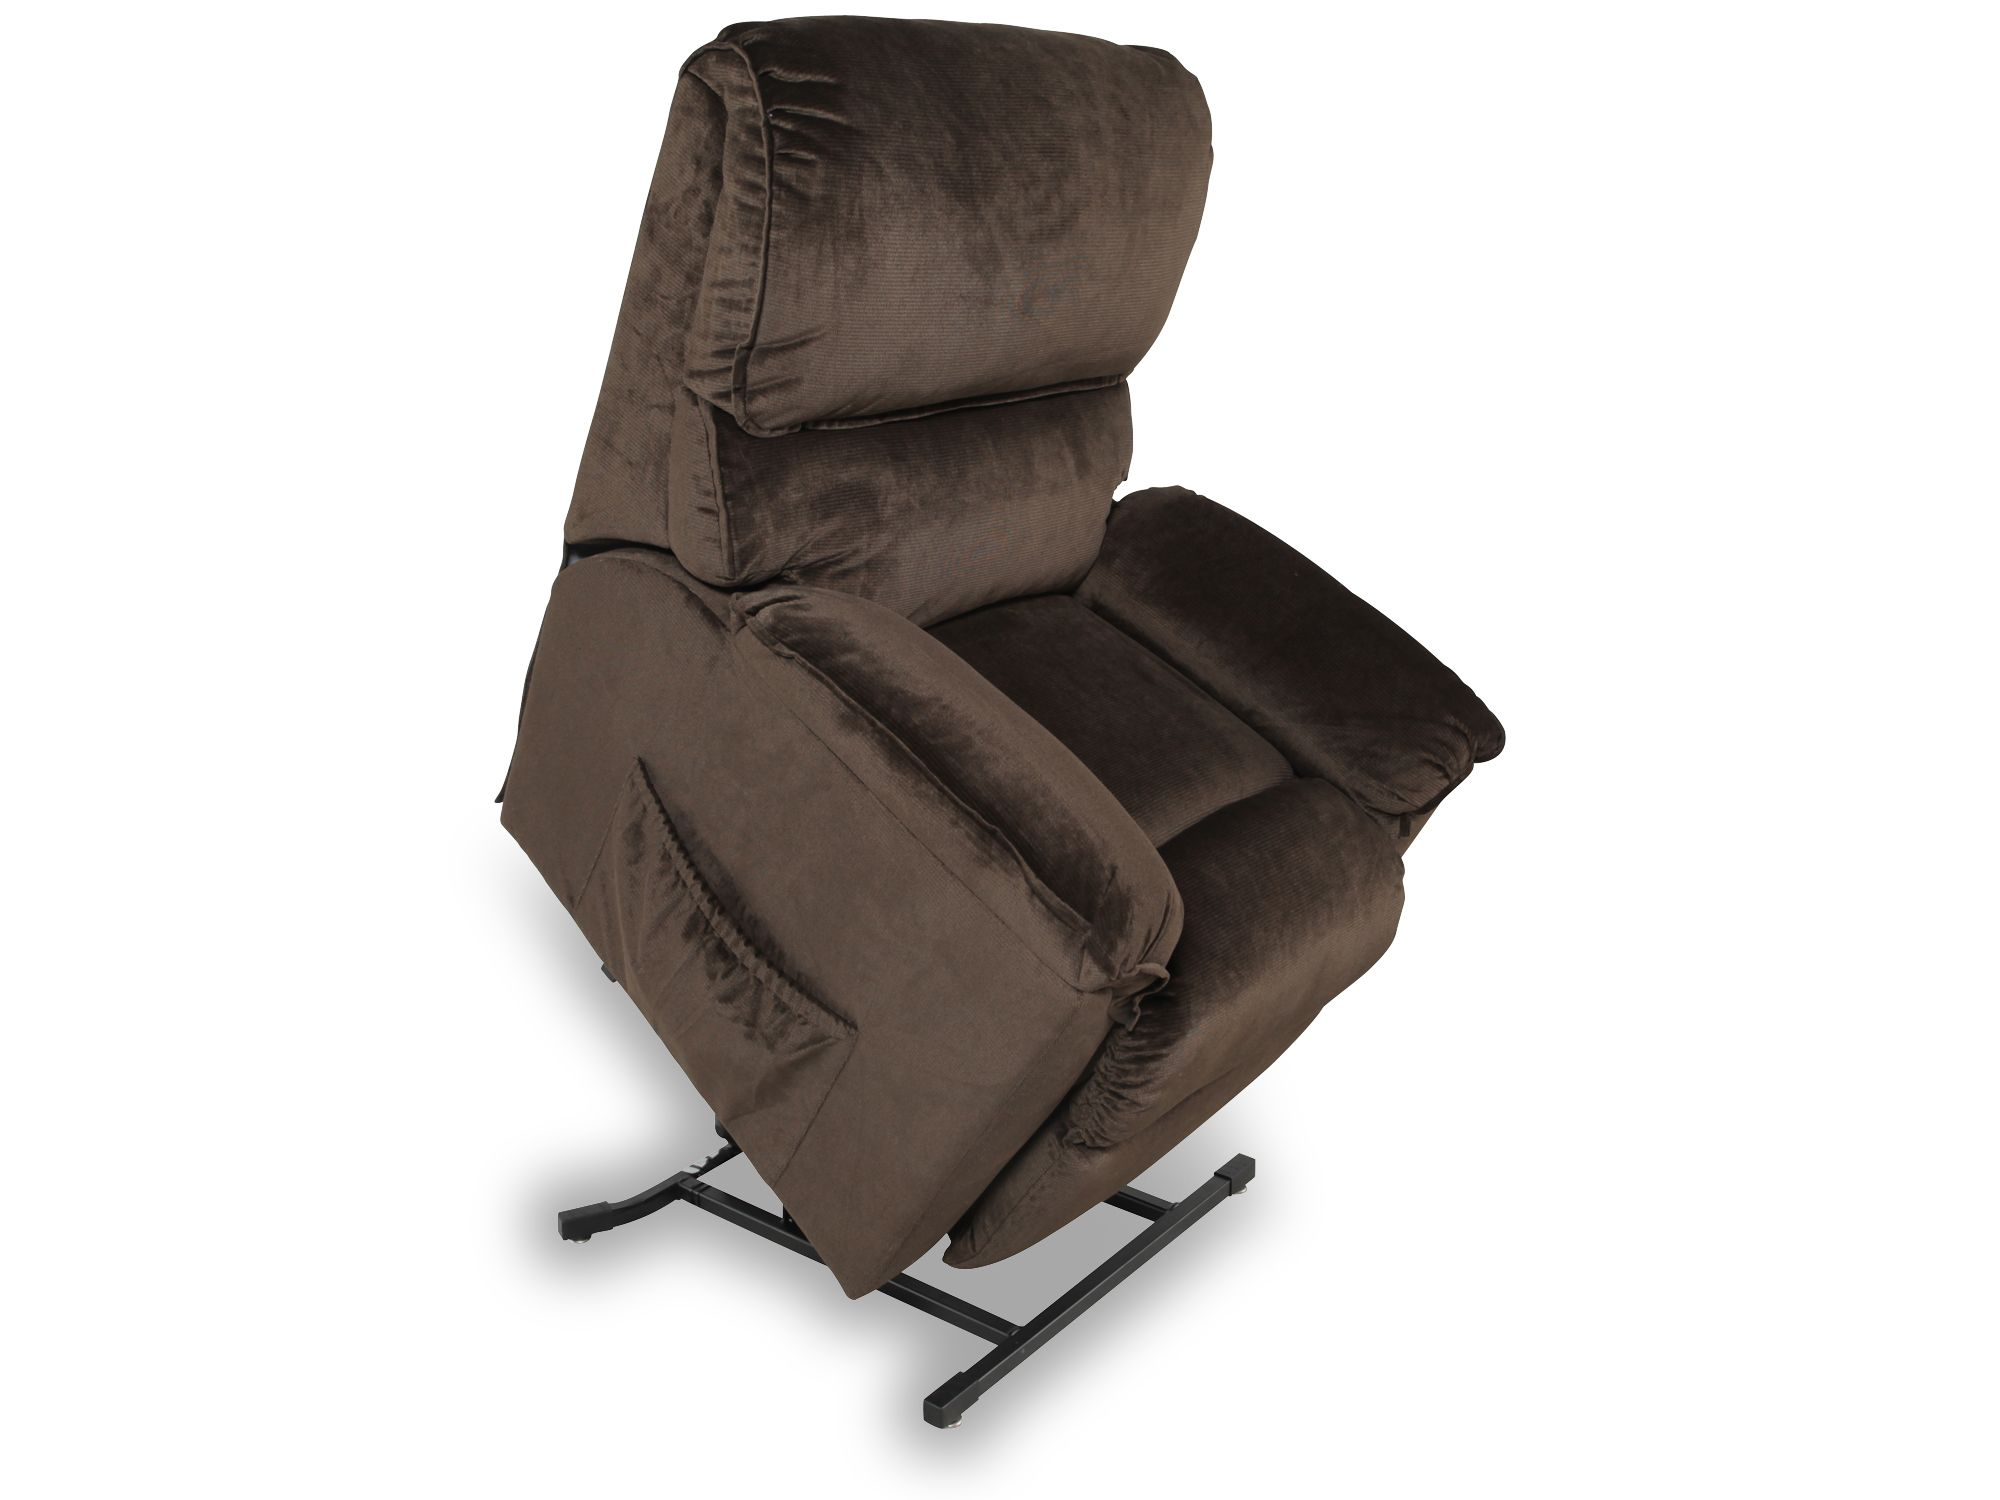 Recliner Lift Chairs Lane Harold Lift Chair Recliner Mathis Brothers Furniture